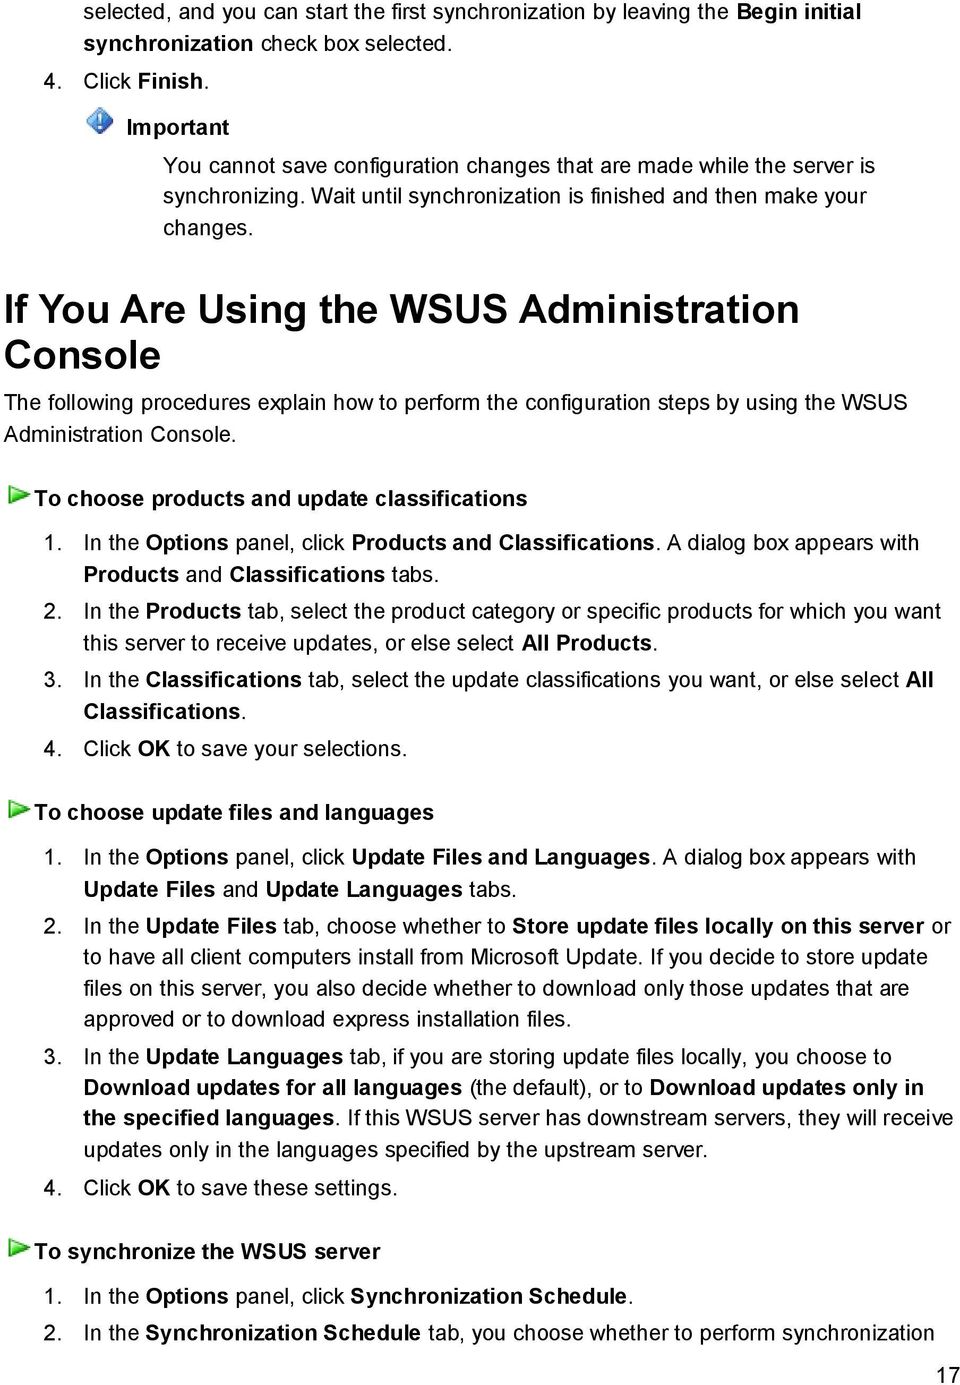 If You Are Using the WSUS Administration Console The following procedures explain how to perform the configuration steps by using the WSUS Administration Console.